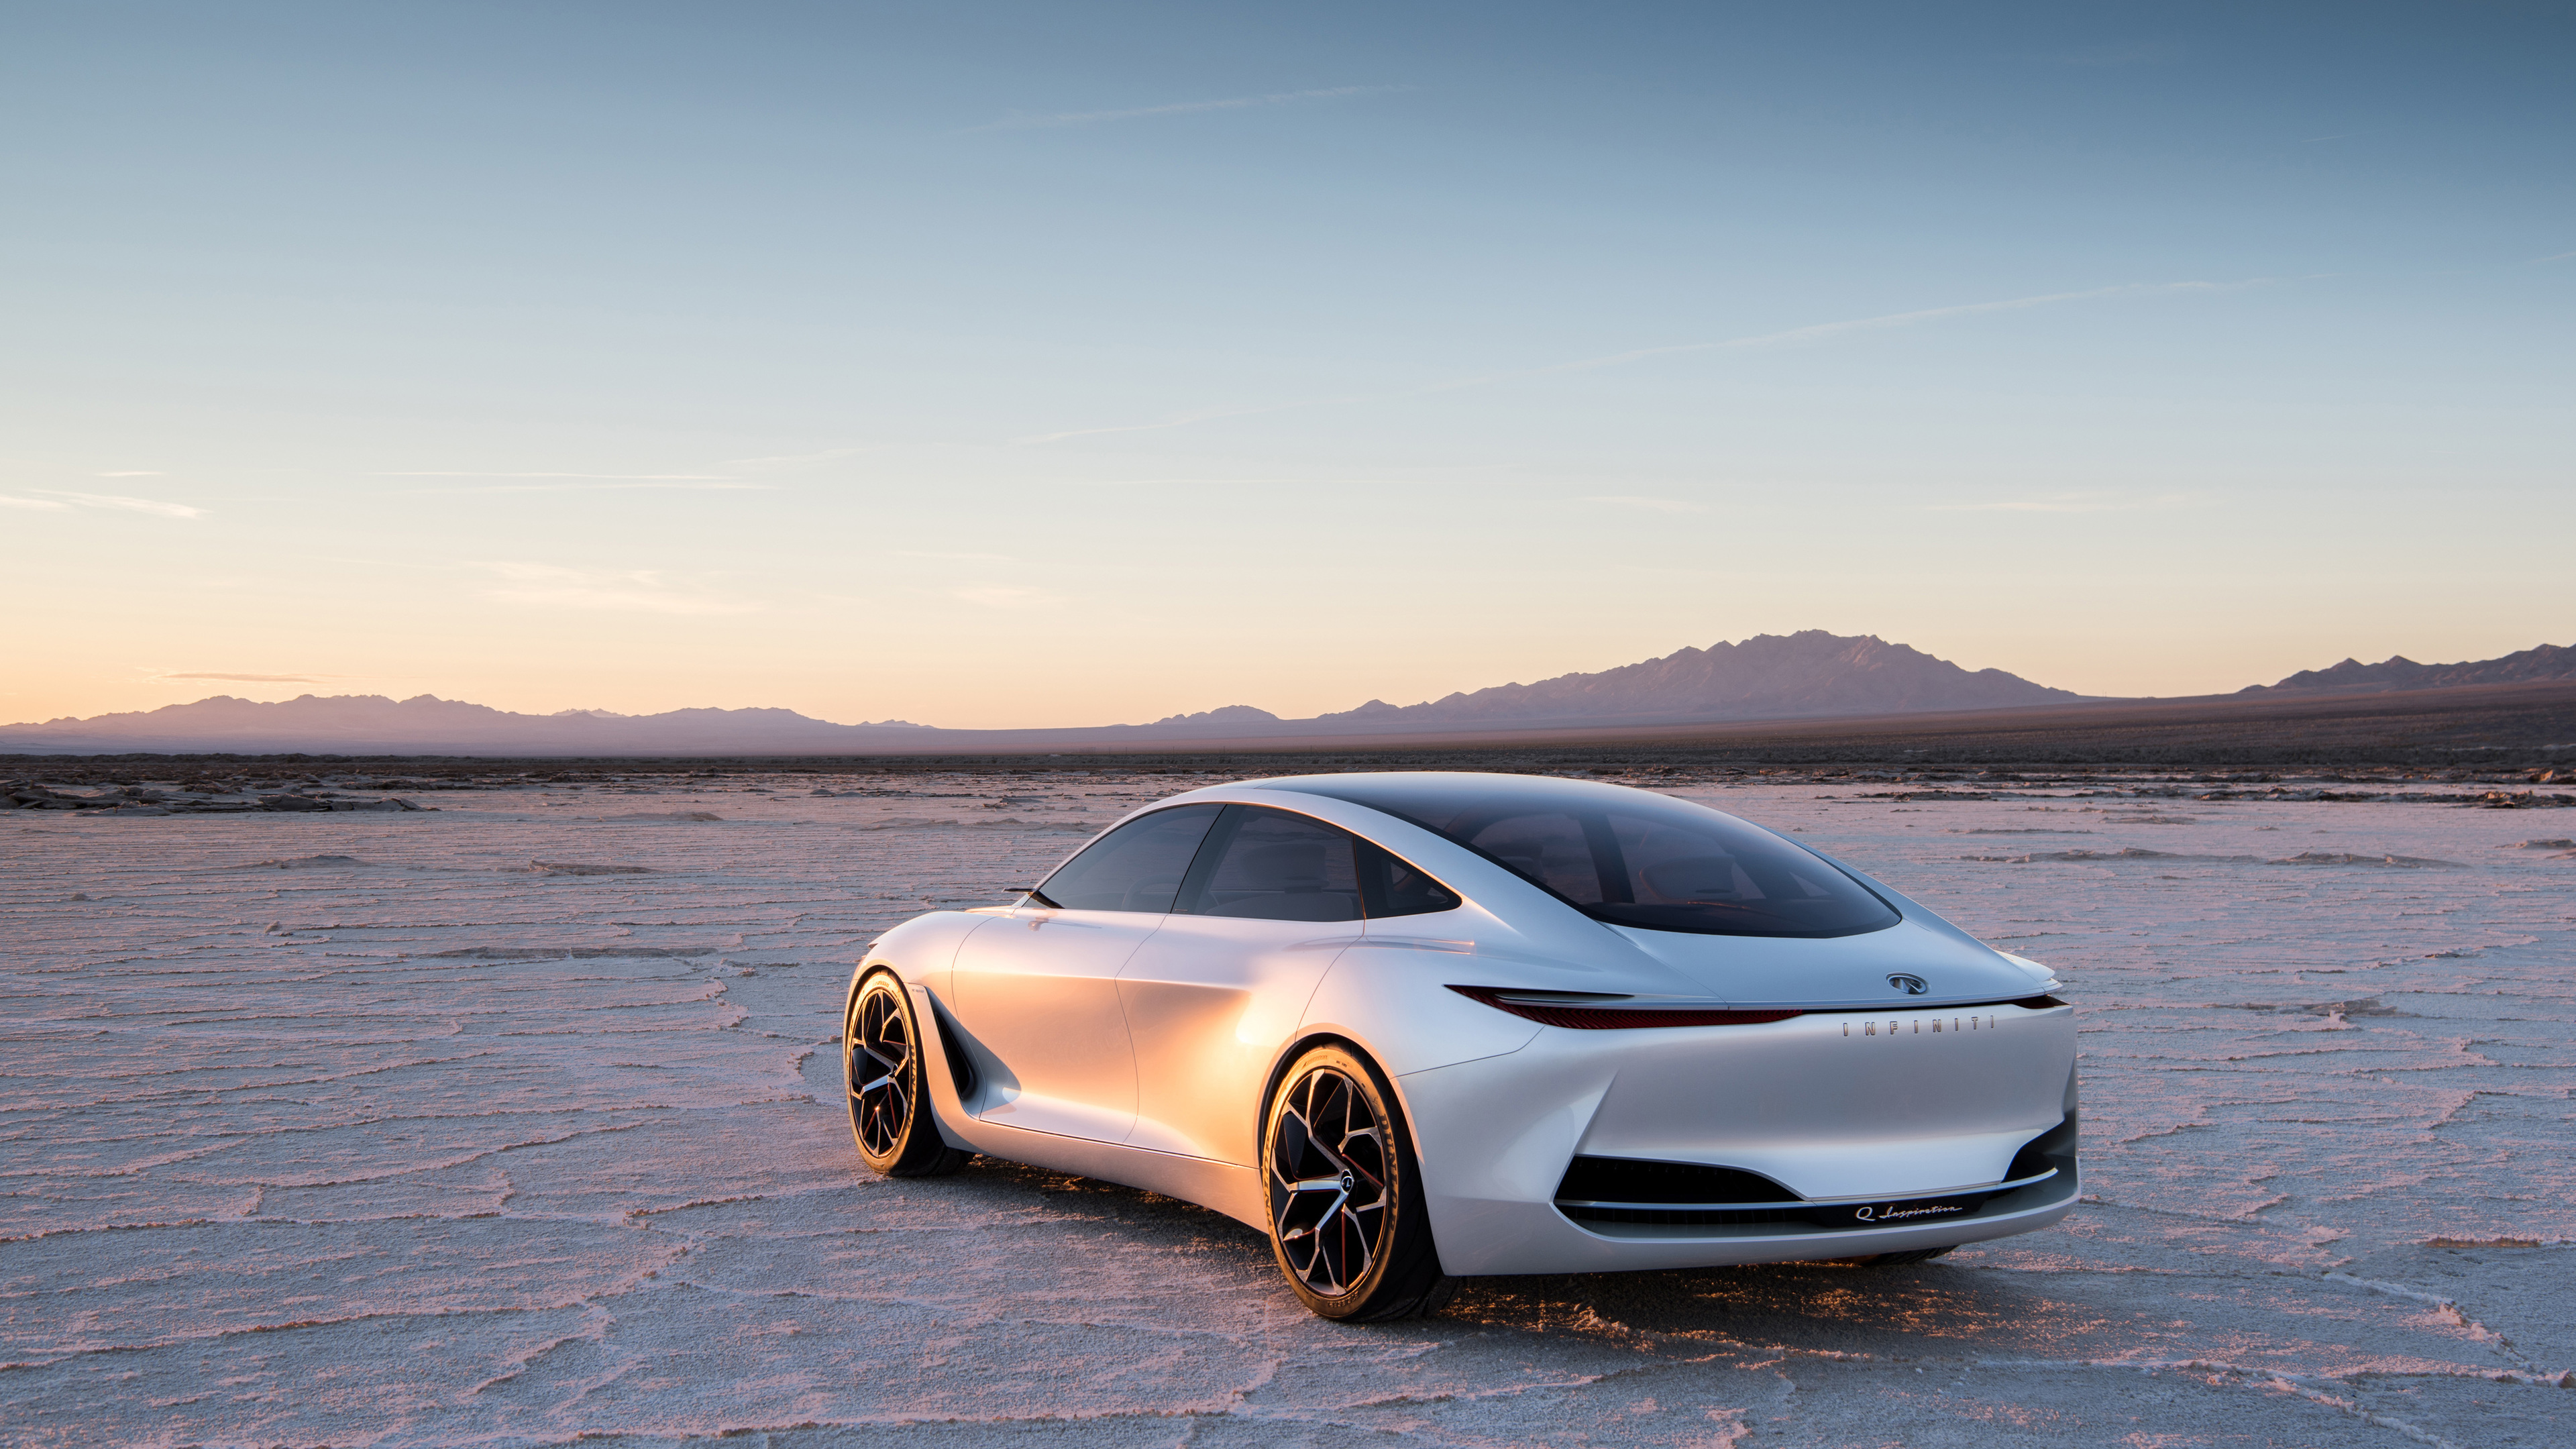 2018 infiniti q inspiration concept car rear 1539109114 - 2018 Infiniti Q Inspiration Concept Car Rear - infiniti wallpapers, infiniti q inspiration concept wallpapers, hd-wallpapers, concept cars wallpapers, cars wallpapers, 4k-wallpapers, 2018 cars wallpapers